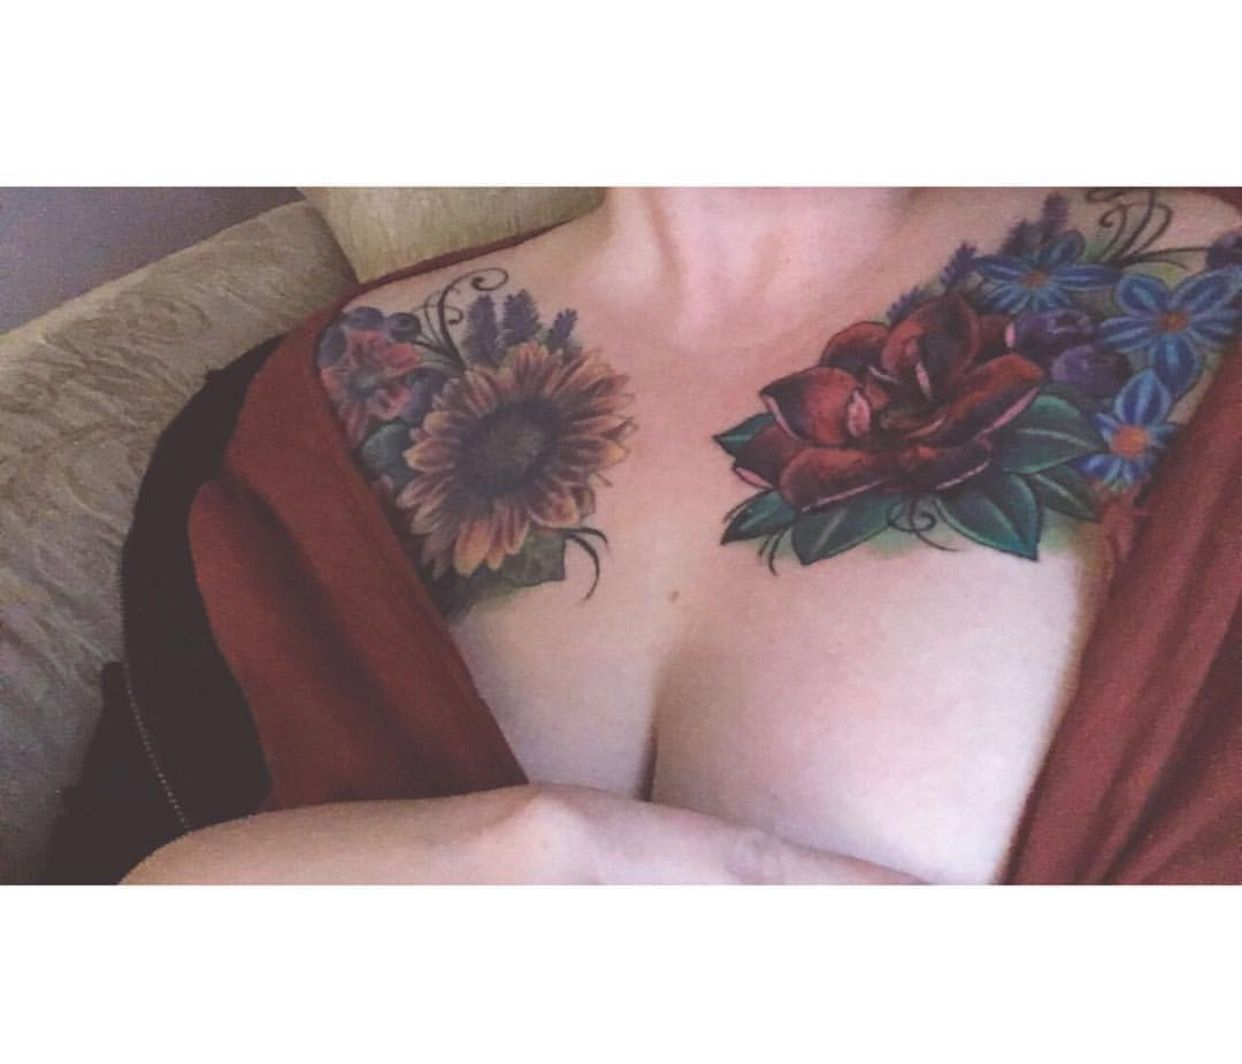 Floral Chest Tattoo Cover Up Chest Tattoos For Women Tattoos For Women Best Tattoos For Women